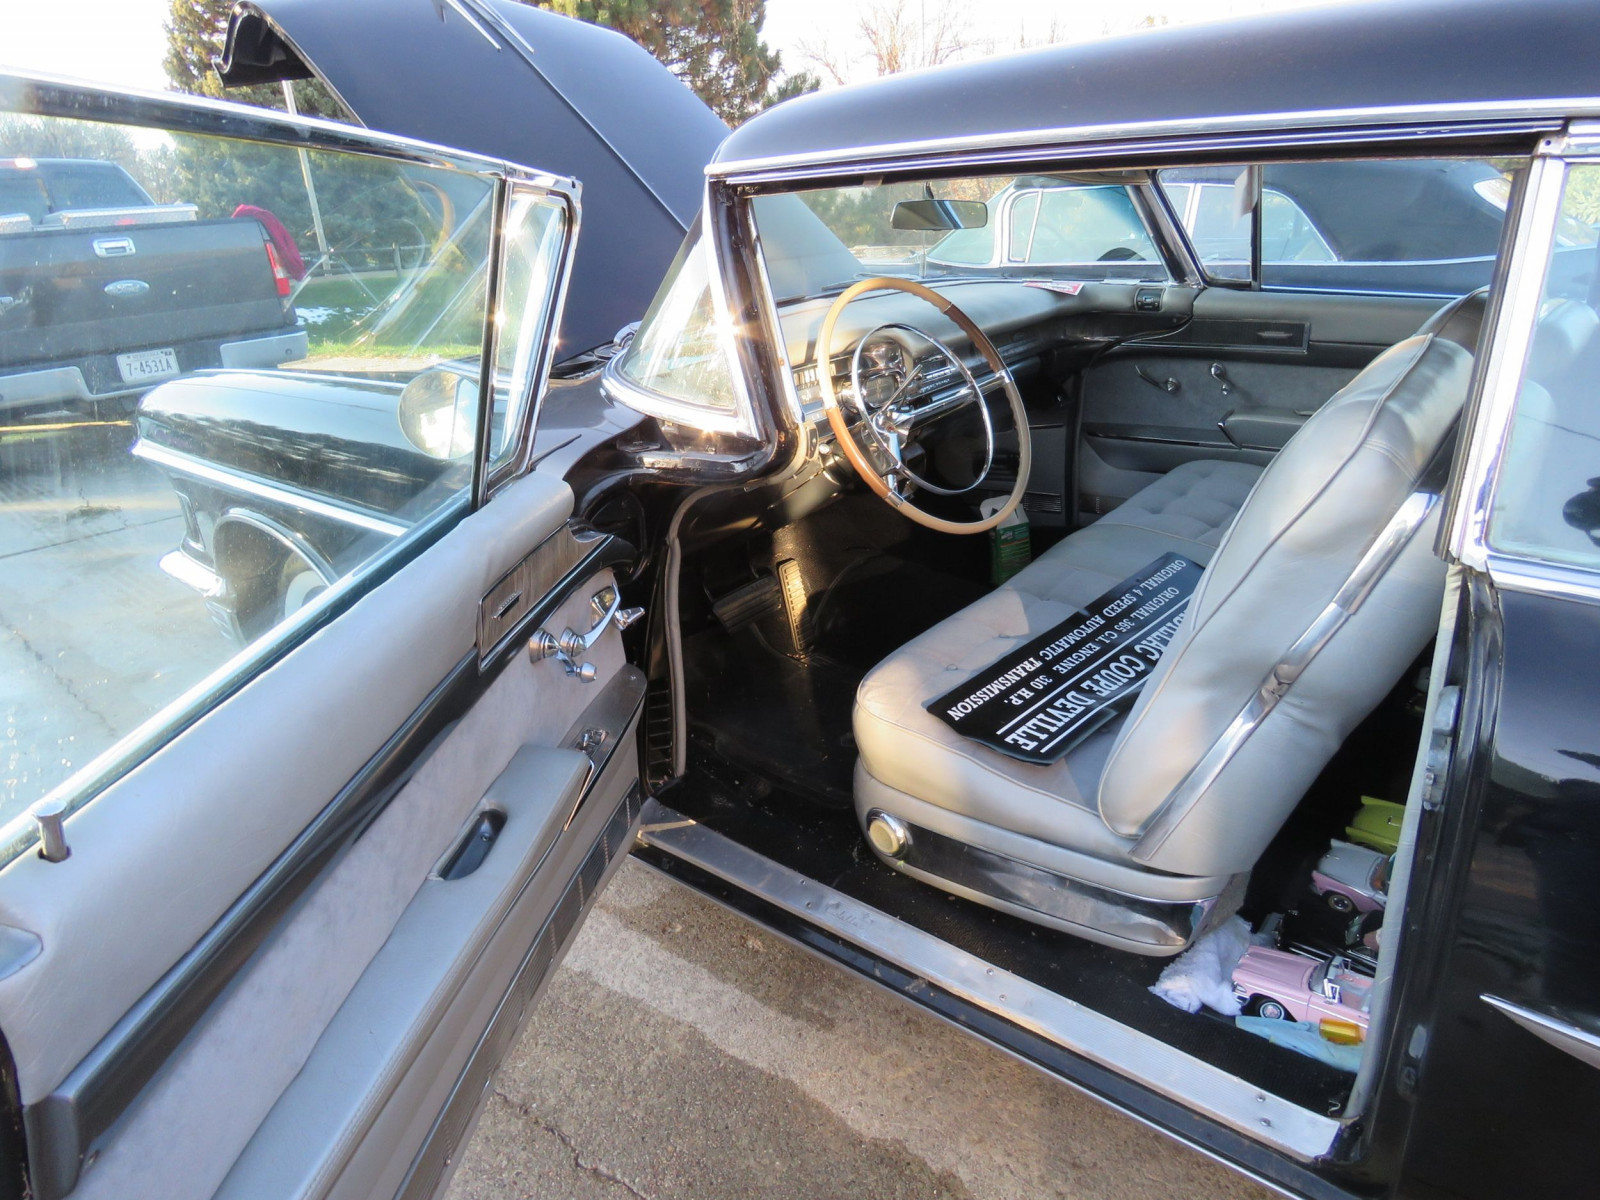 1958 Cadillac Coupe DeVille - Image 12